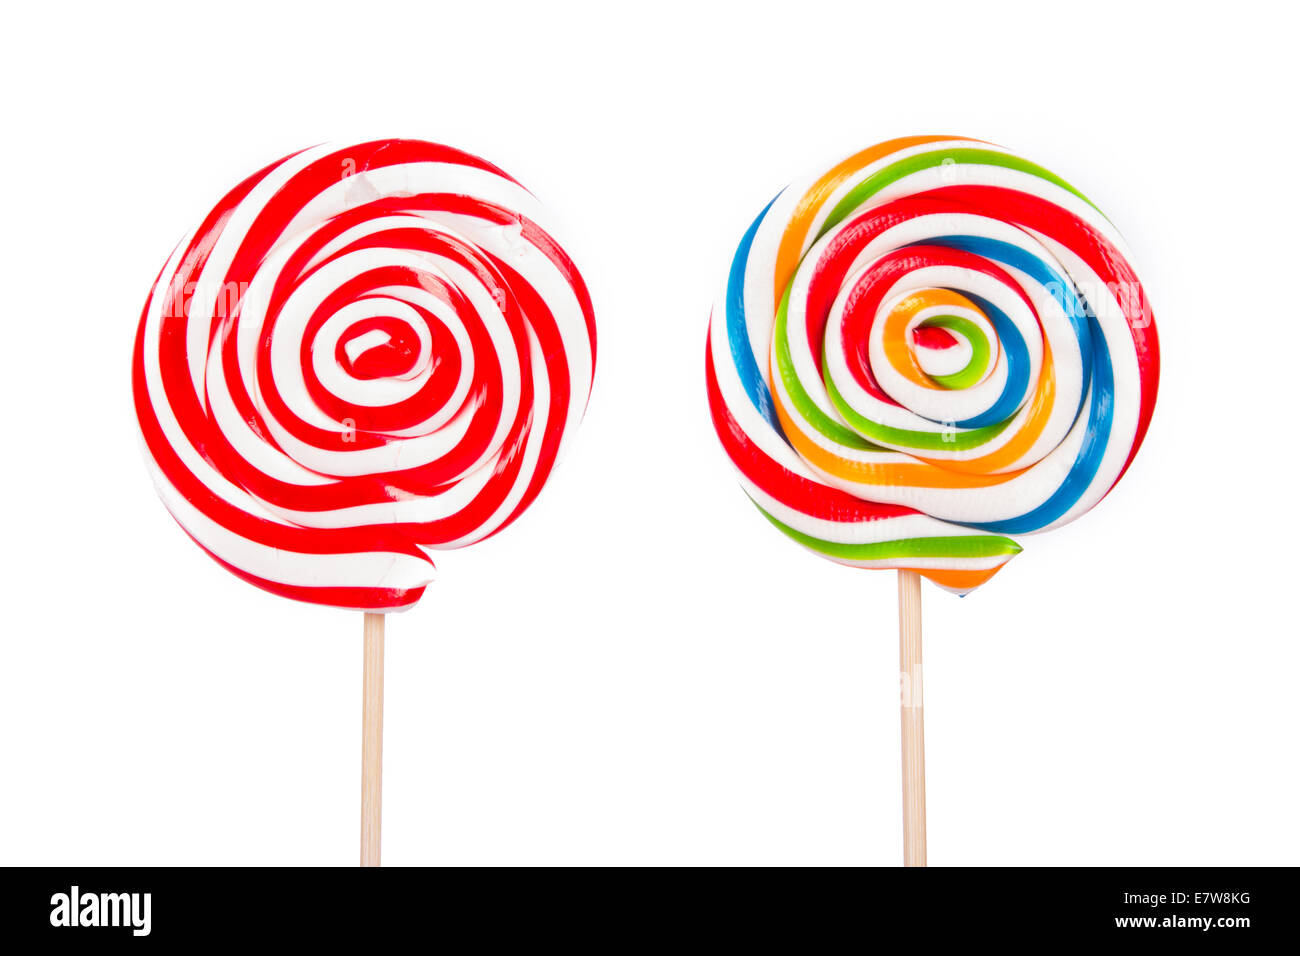 Colorful spiral lollipop candy on stick, isolated on white background. - Stock Image